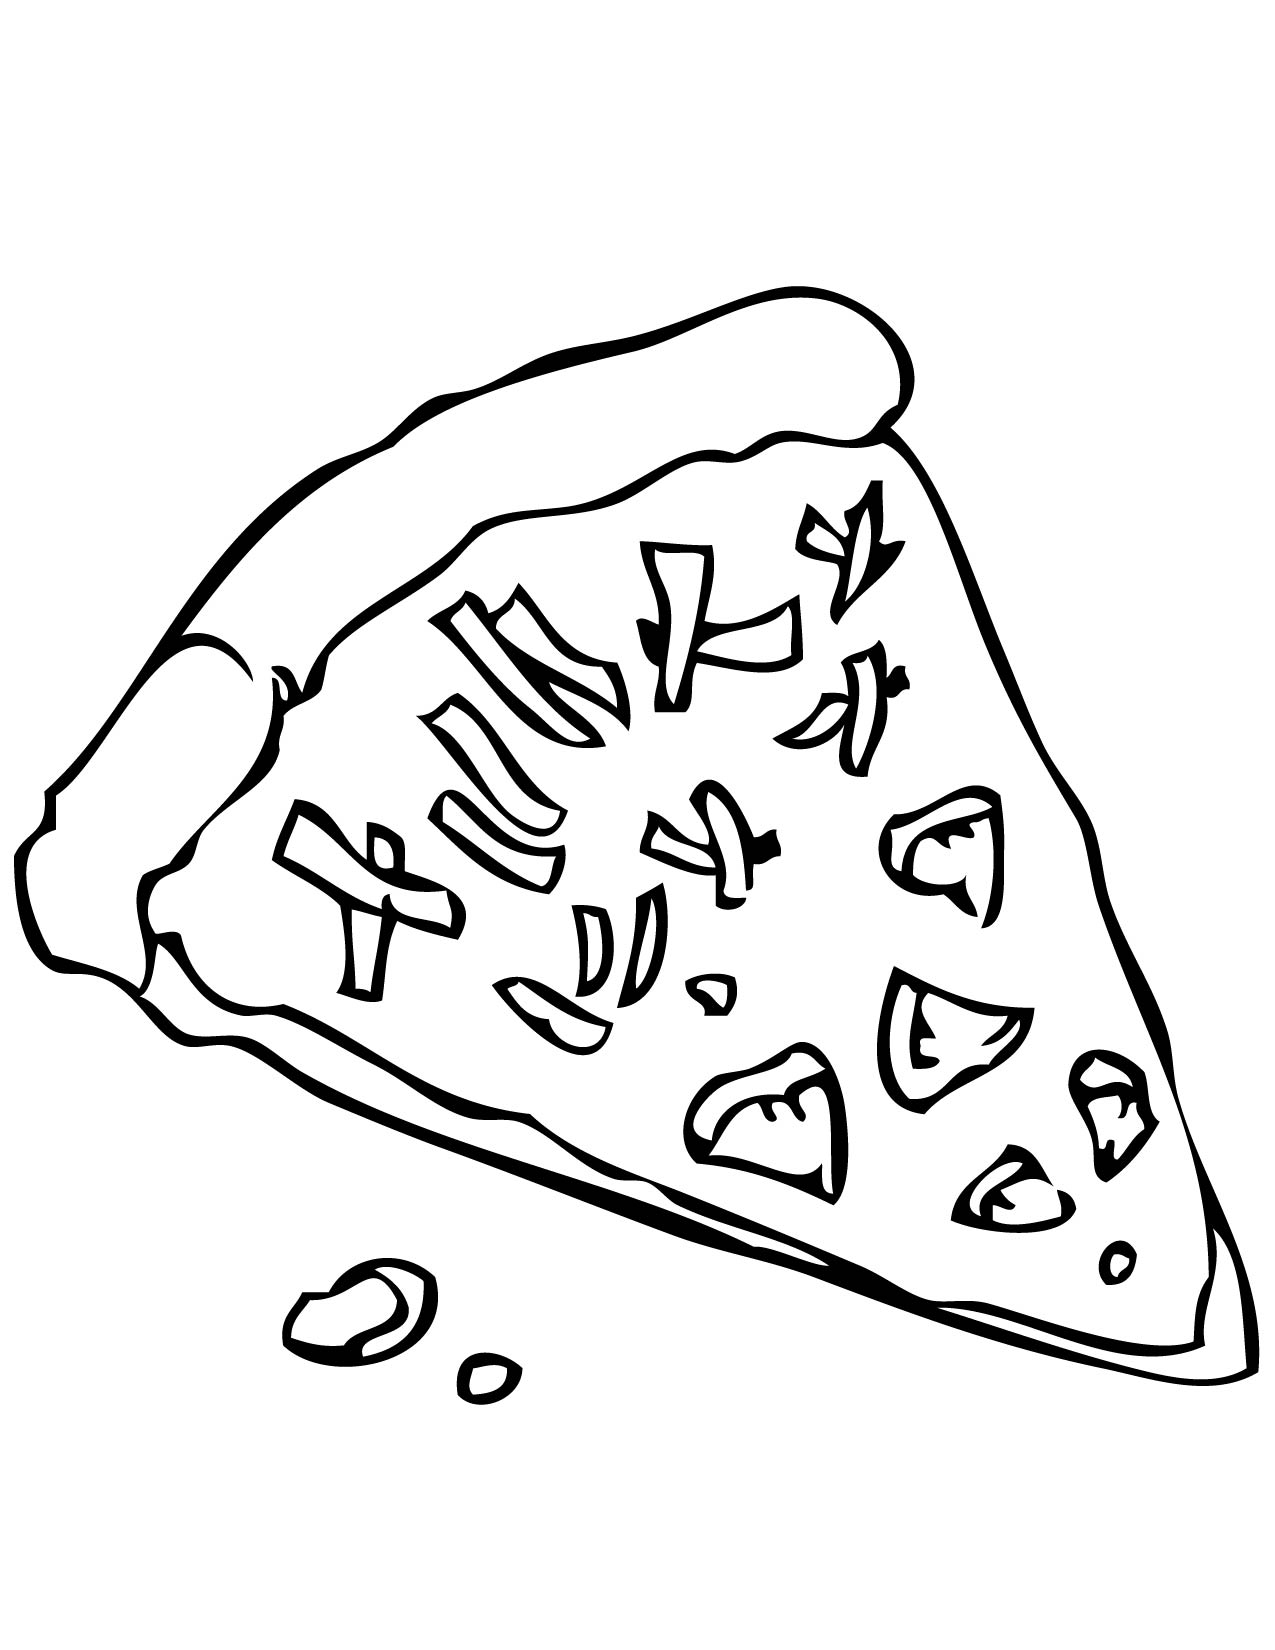 Pizza lessons and a pizza coloring page printable - Pizza Coloring Pages